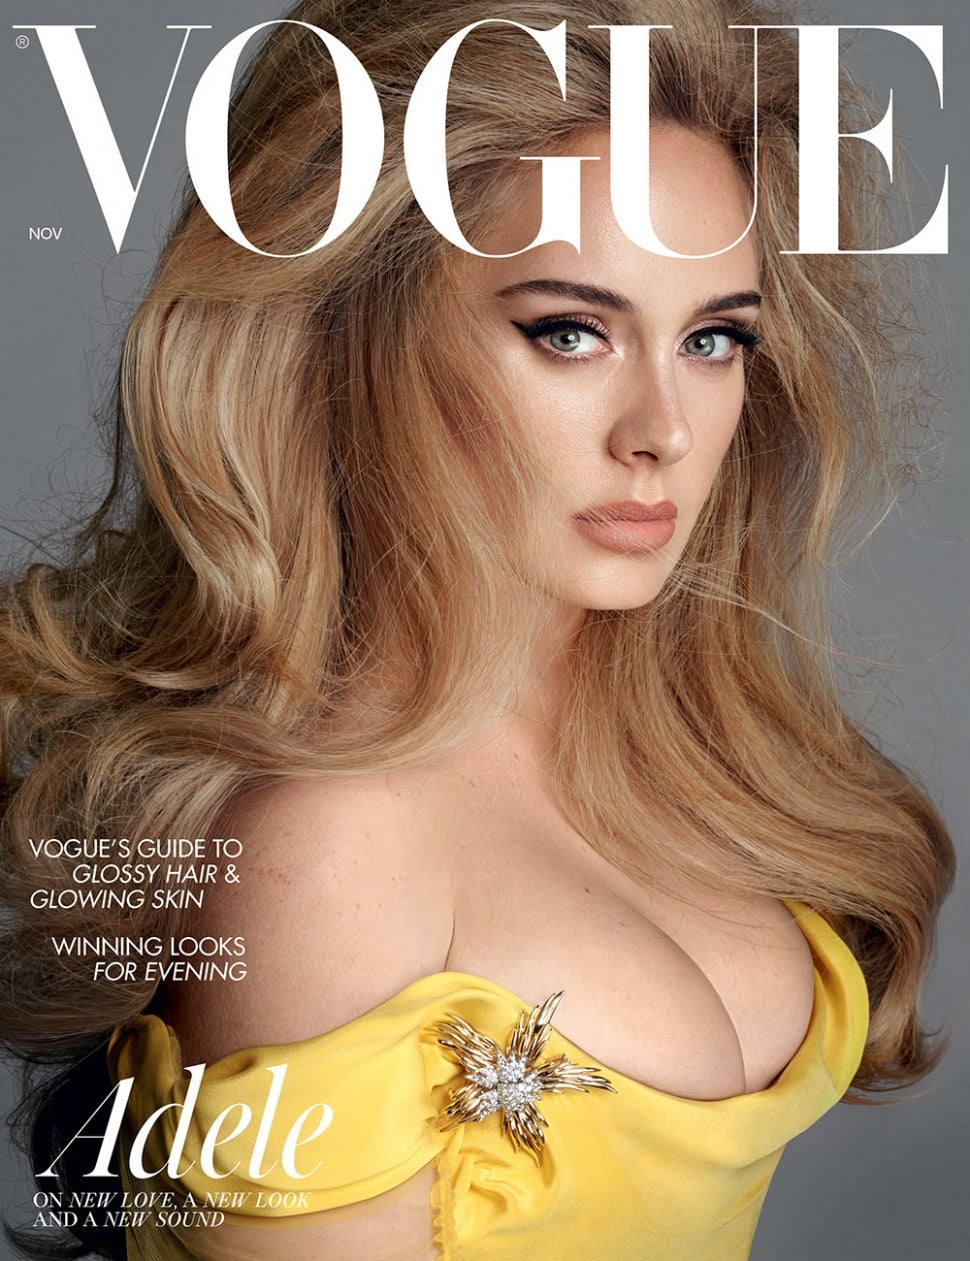 Adele covers the November issues of American and British Vogues.